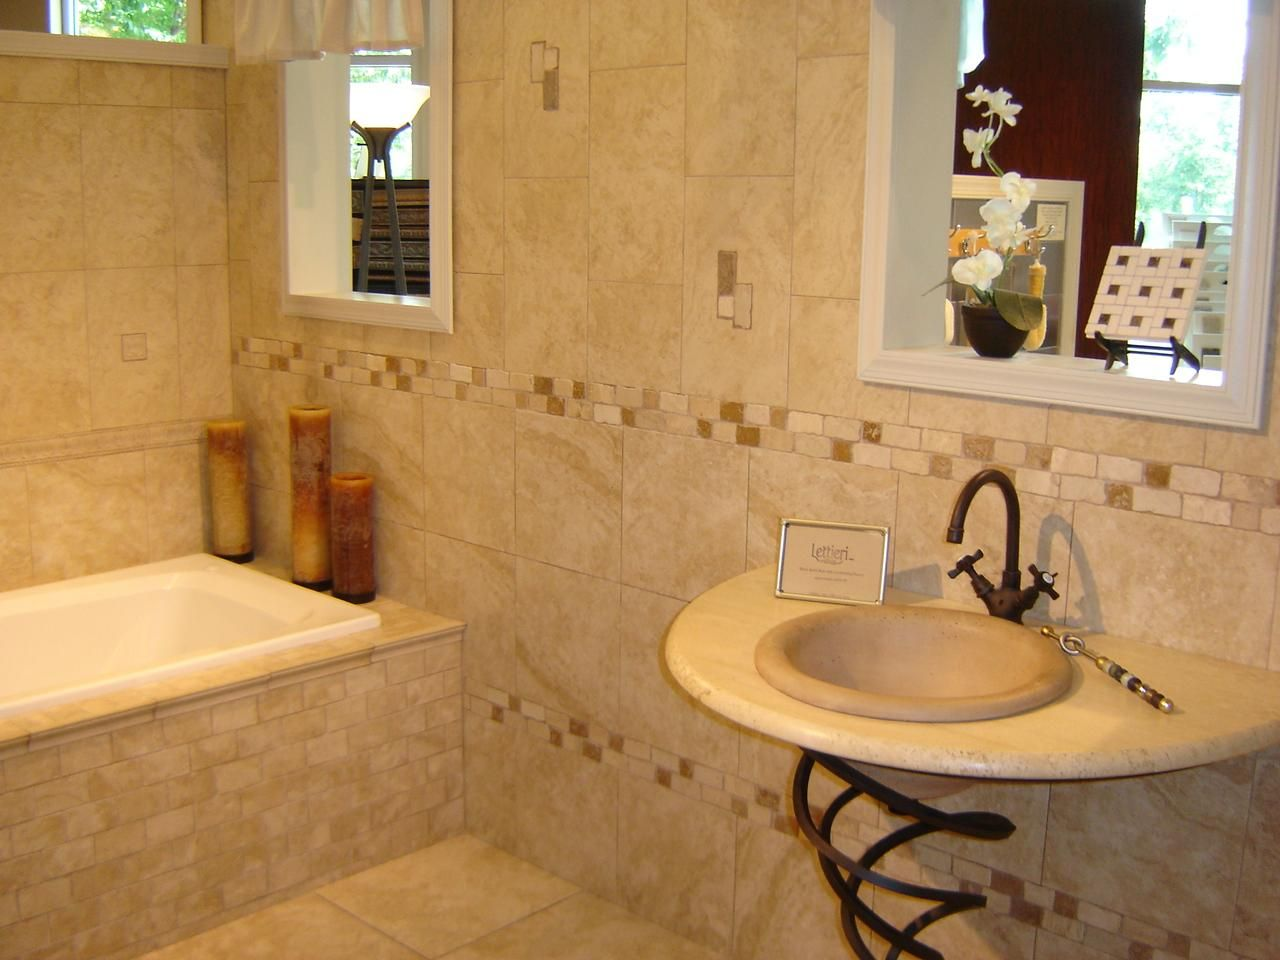 How To Tile A Bathroom Walls As Well As Shower/Tub Area   Maggiescarf